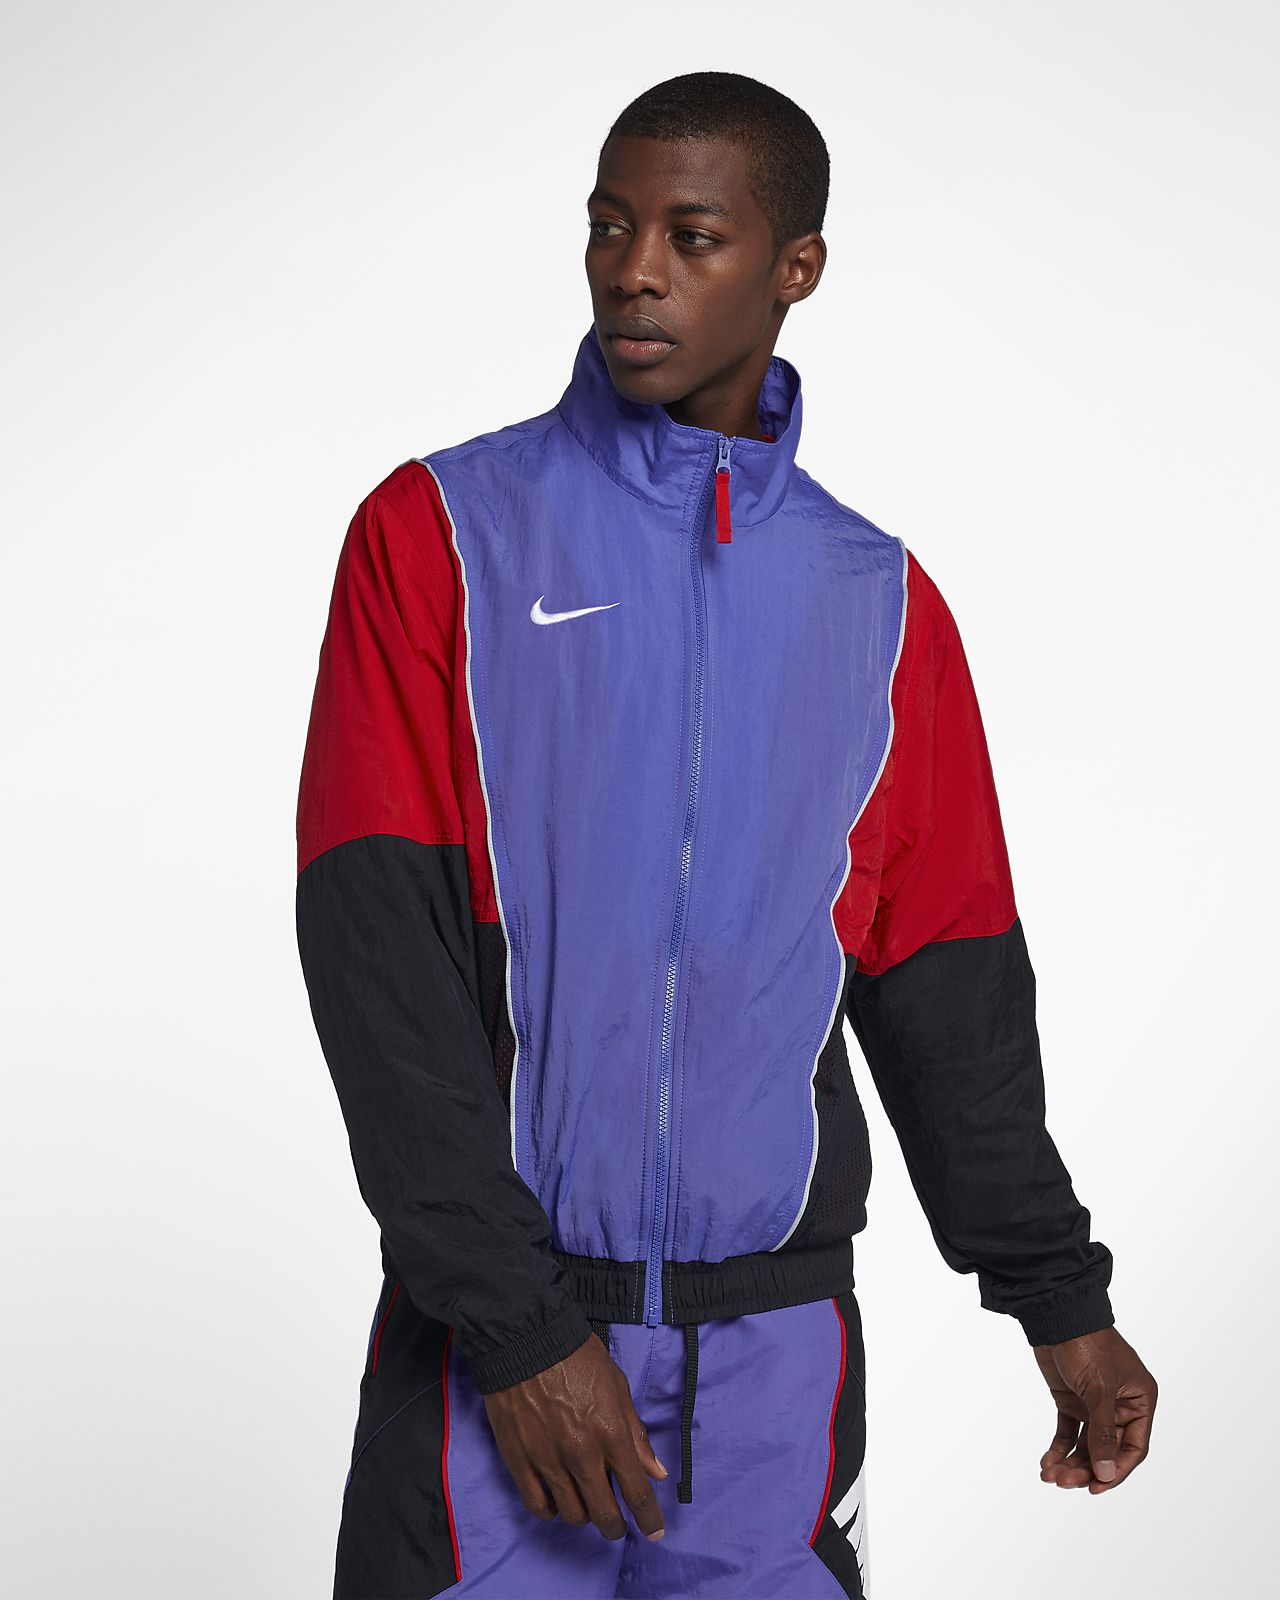 bff2af3928 Nike Throwback Men s Tracksuit Basketball Jacket. Nike.com